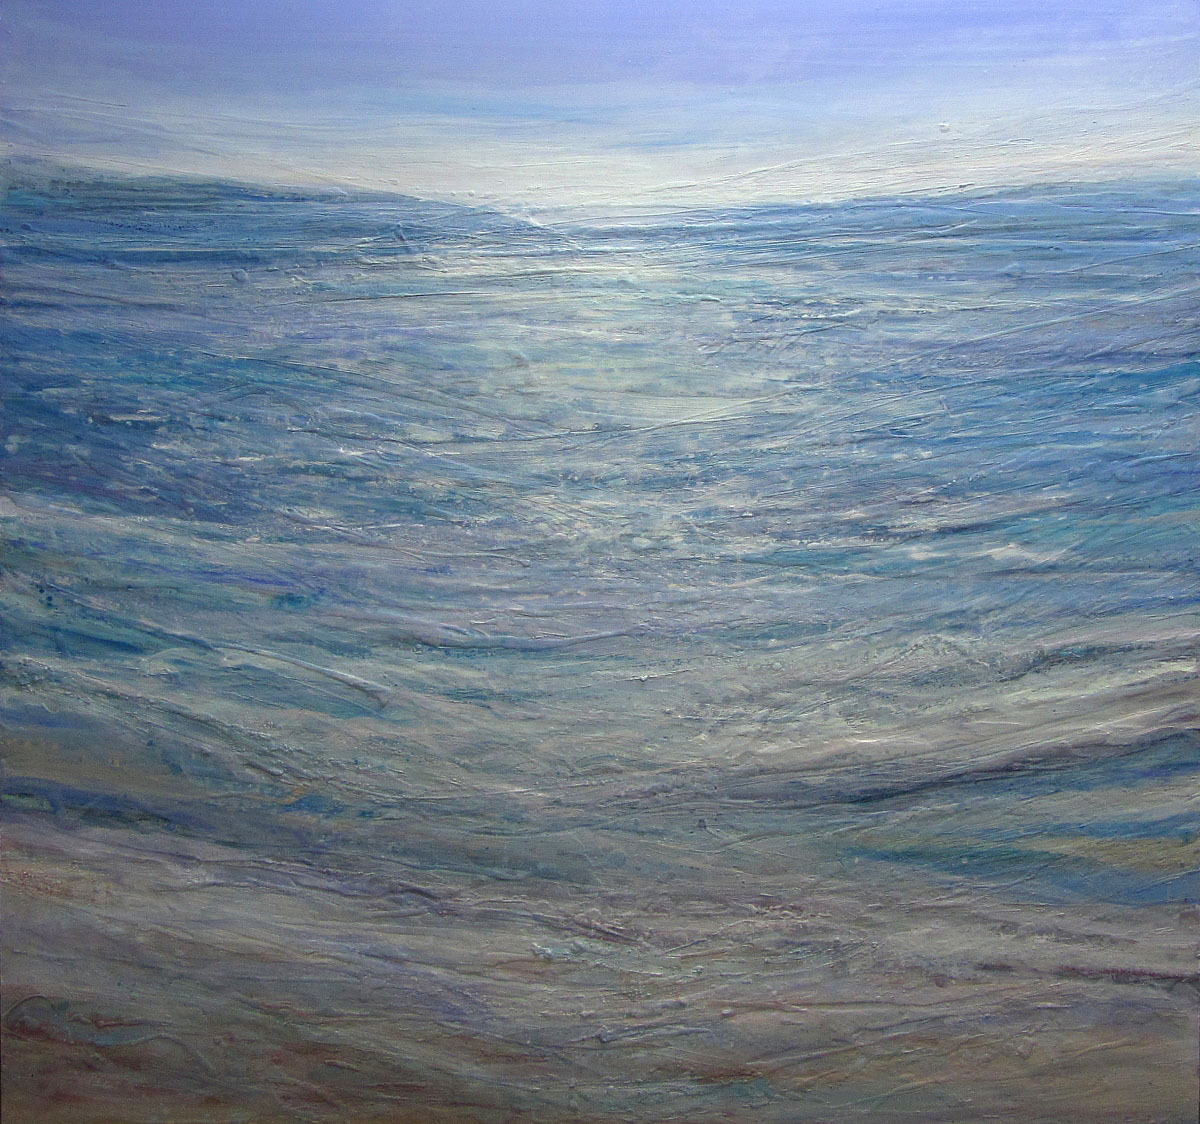 Alison McGill, 'Shore, Sea and Sky', oil and wax on board